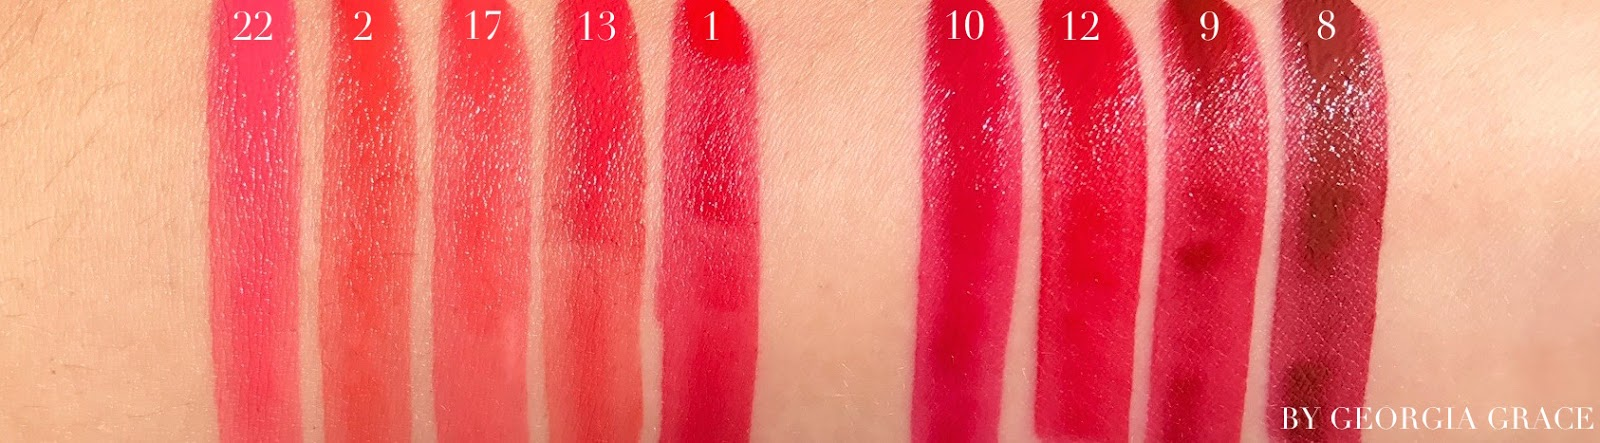 Ysl Rouge Tatouage Matte Lip Stain Swatches Review